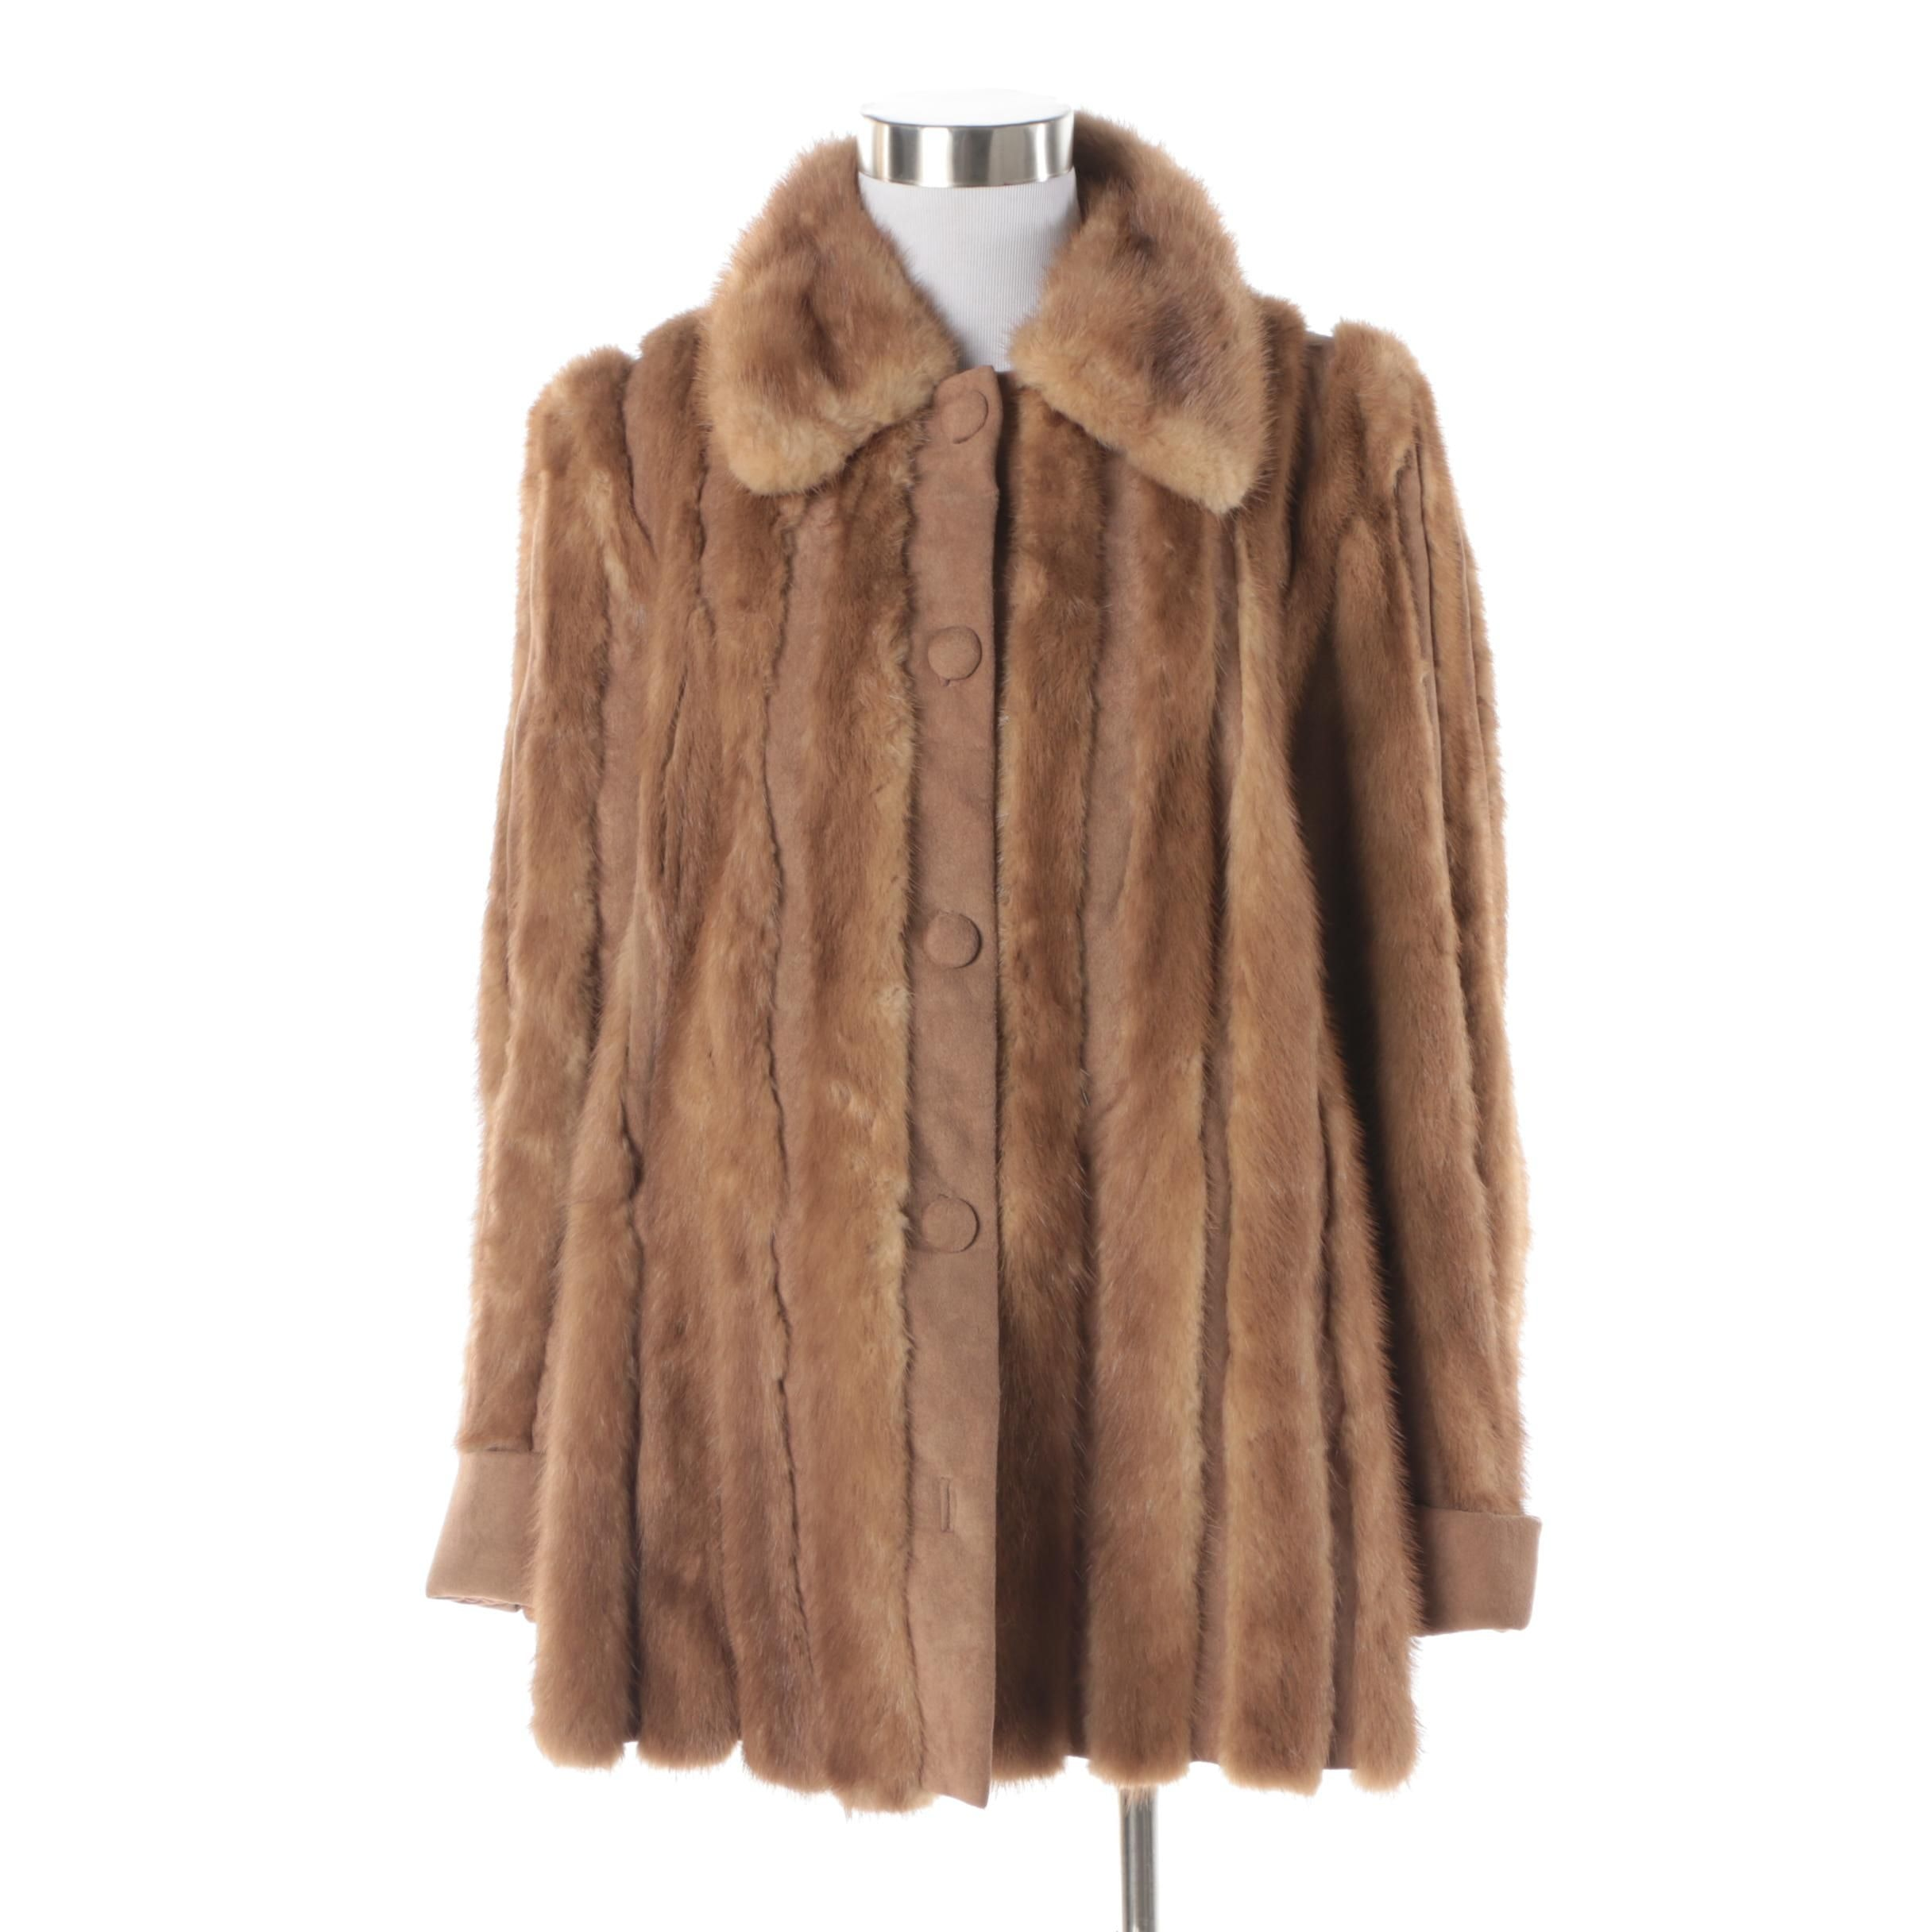 Women's Vintage Fuhrman's Furs of Beverly Hills Brown Mink Fur and Suede Coat